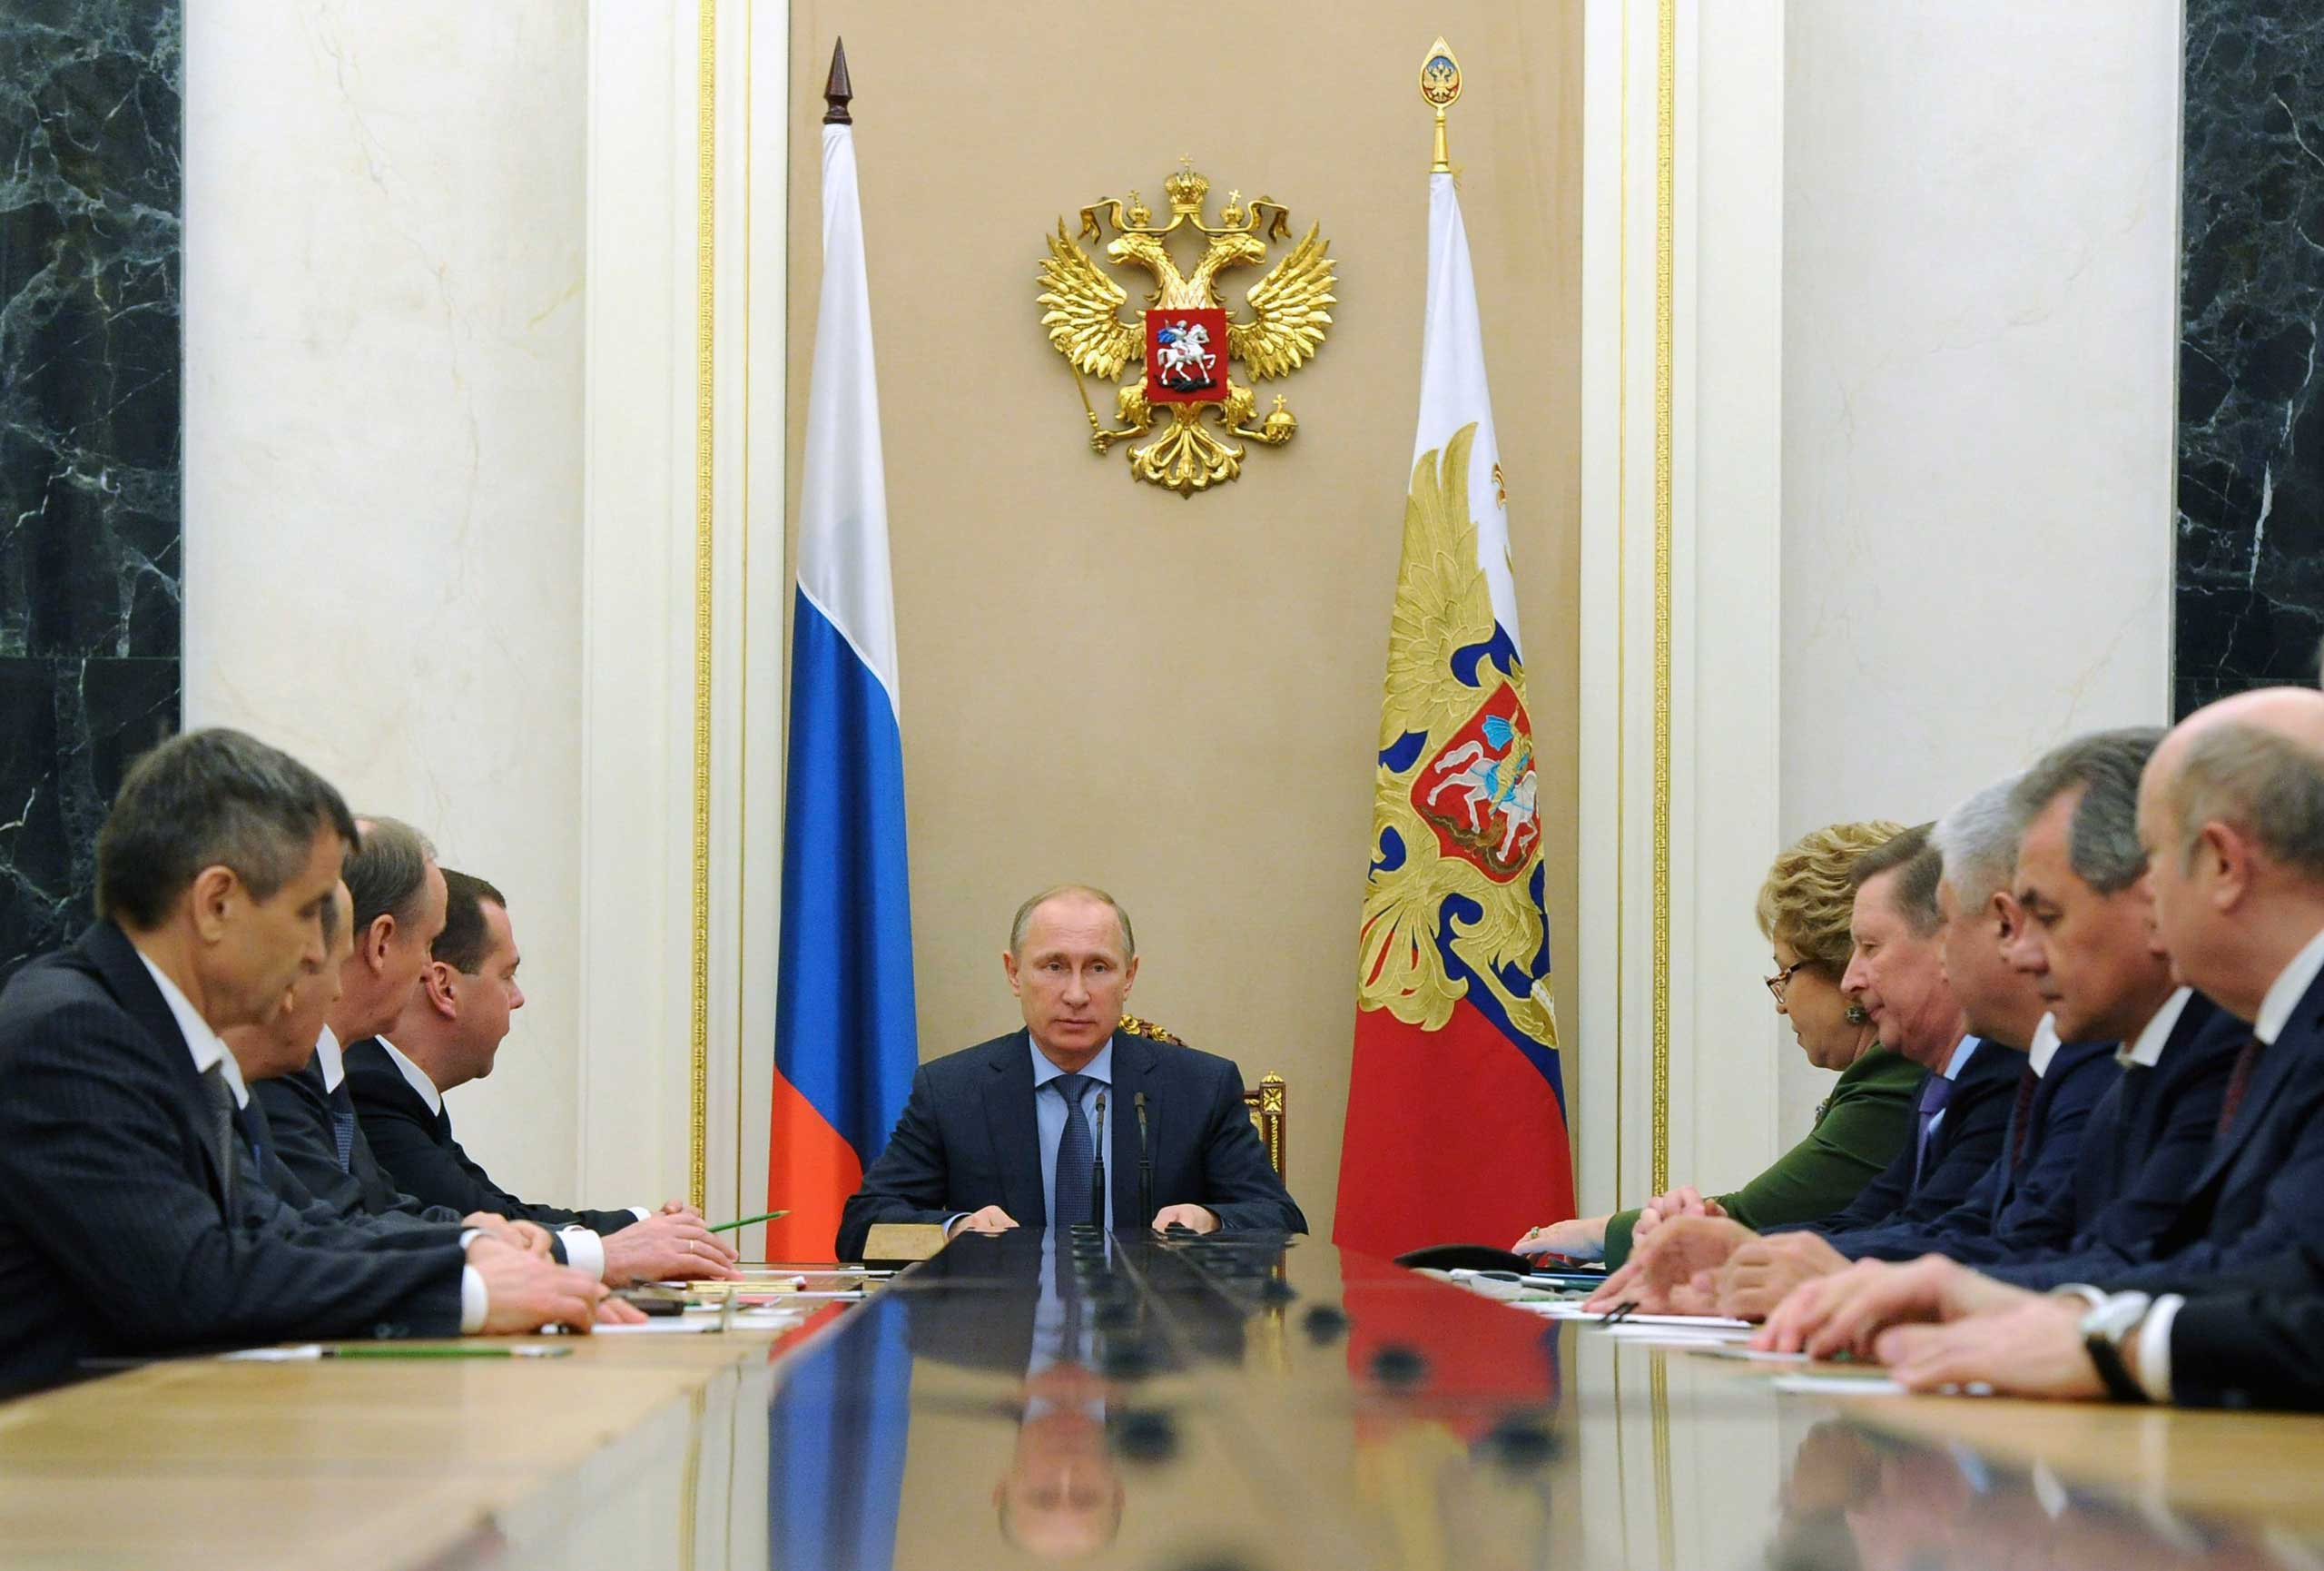 Russia's President Vladimir Putin (C) chairs a meeting with permanent members of the Security Council at the Kremlin in Moscow, December 12, 2014.